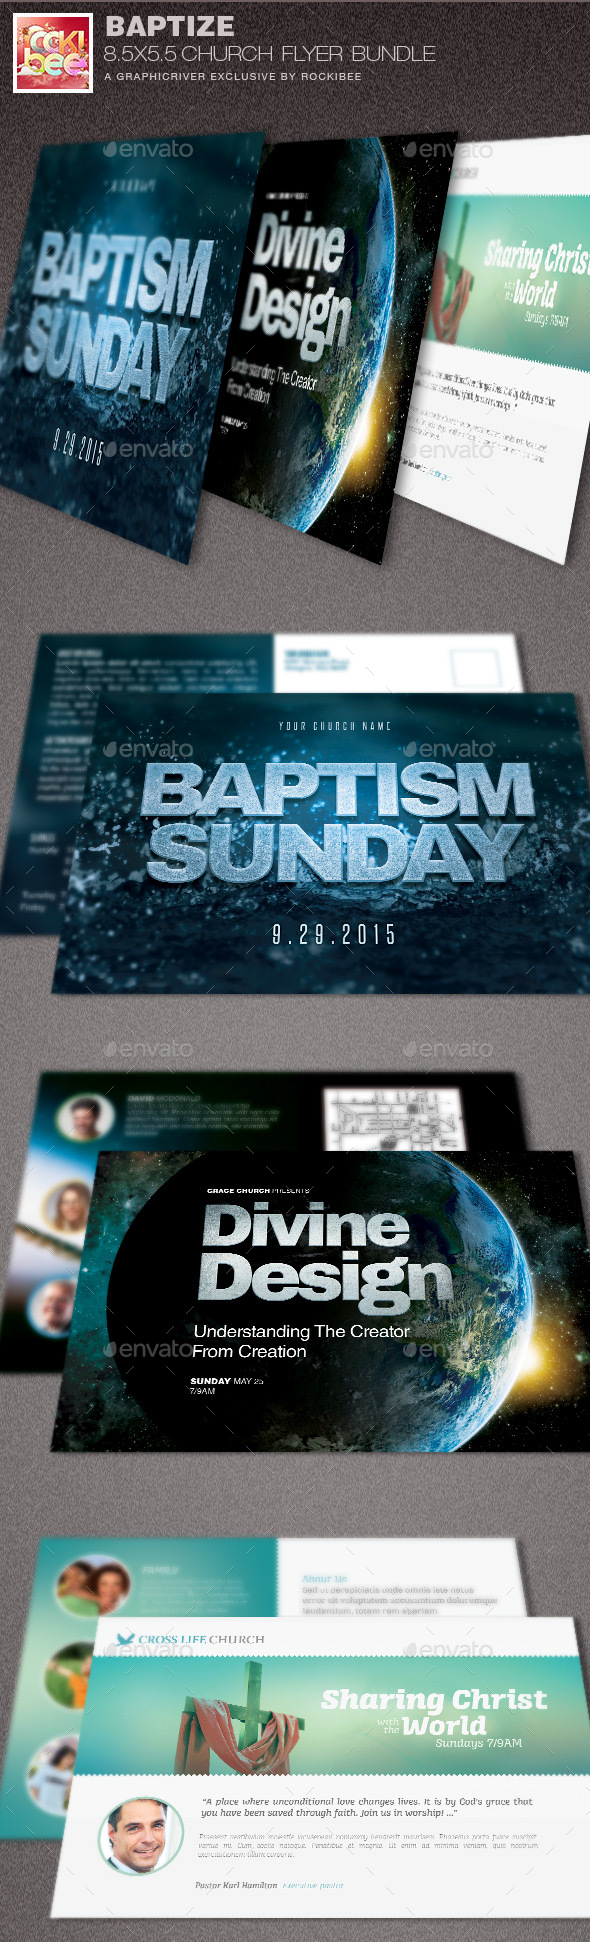 Baptize Church Flyer Template Bundle - Church Flyers